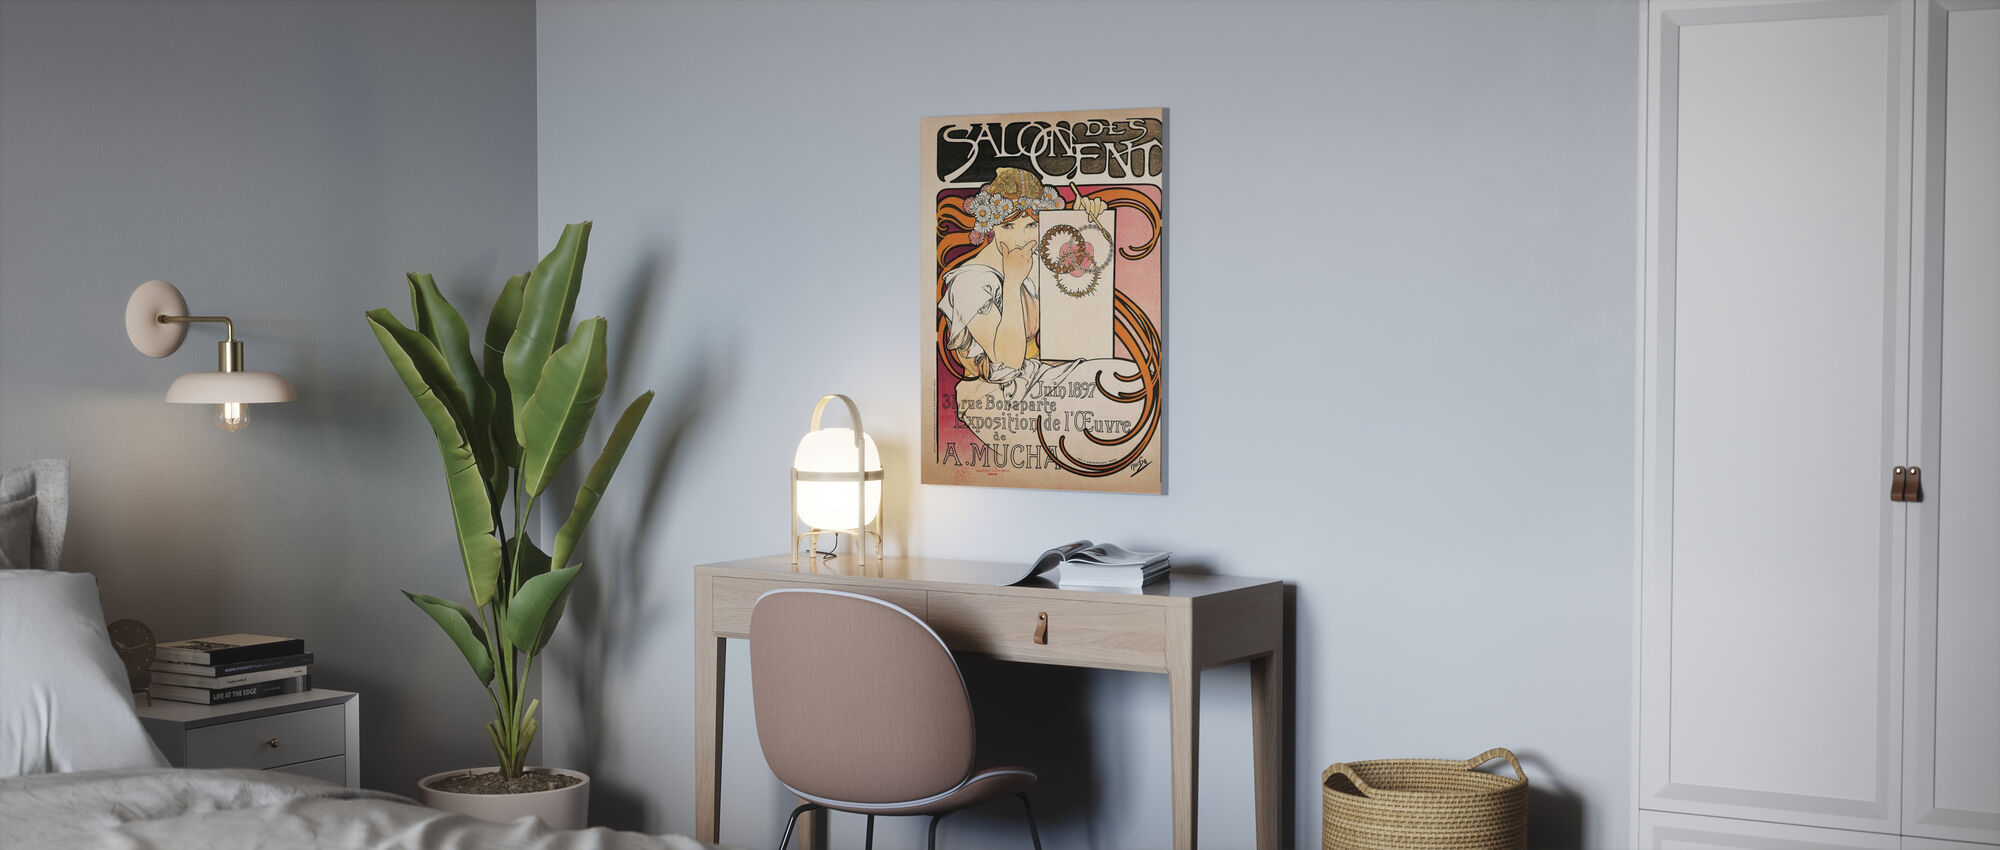 Alphonse Mucha -Salon des Cent 1897 - Canvas print - Office